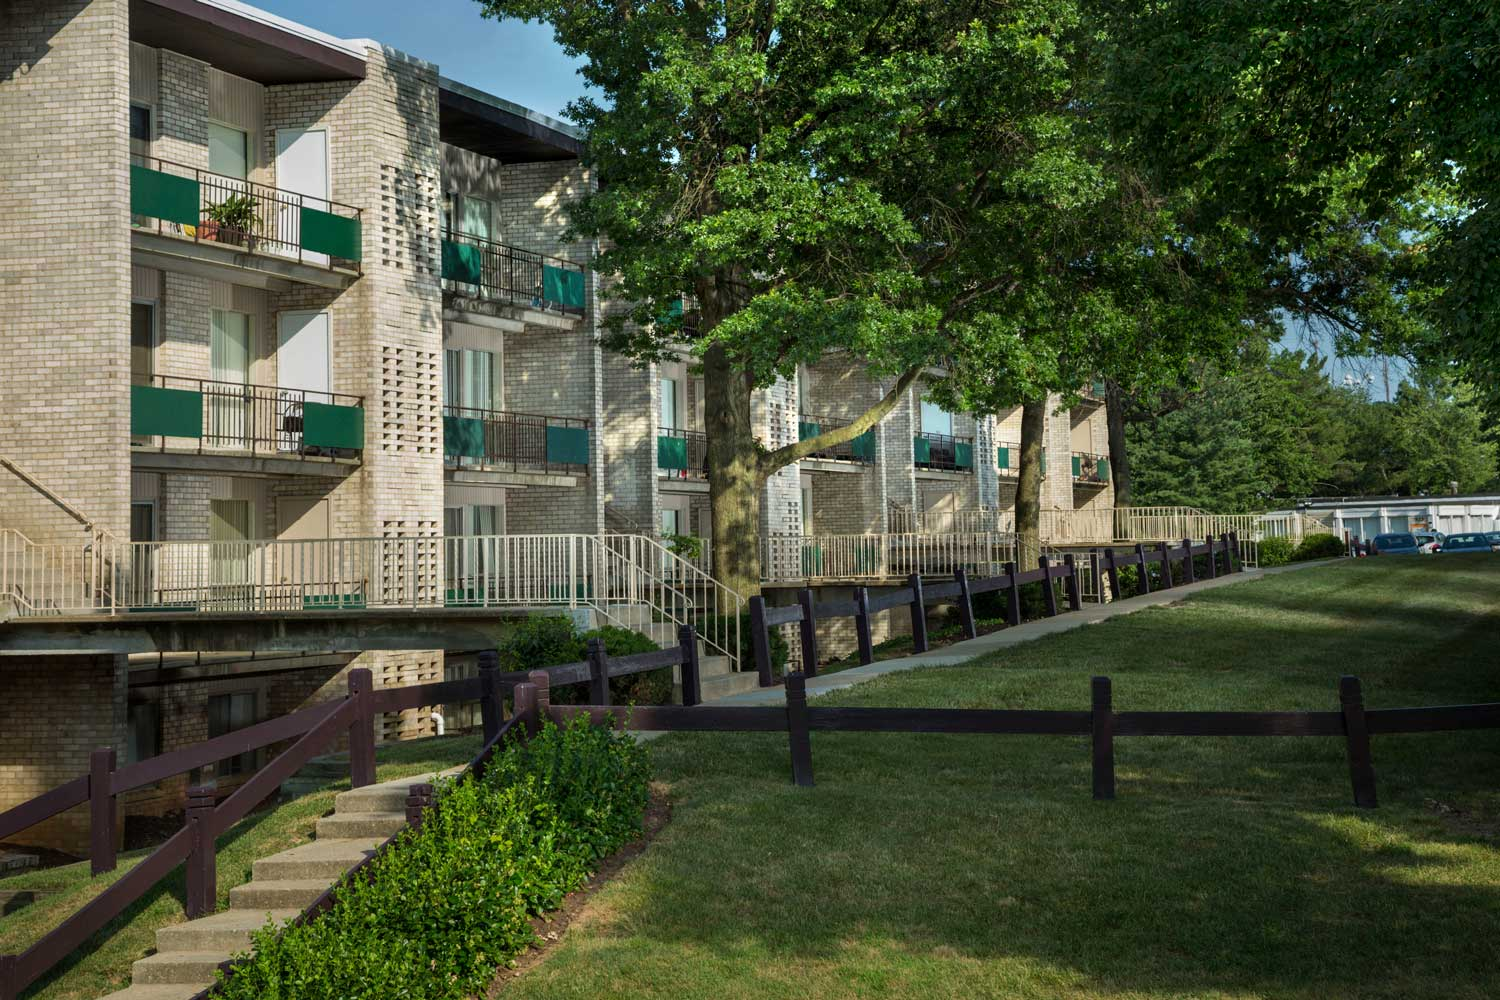 1, 2 and 3 bedroom apartments at Heritage Square Apartments in New Carrollton, MD